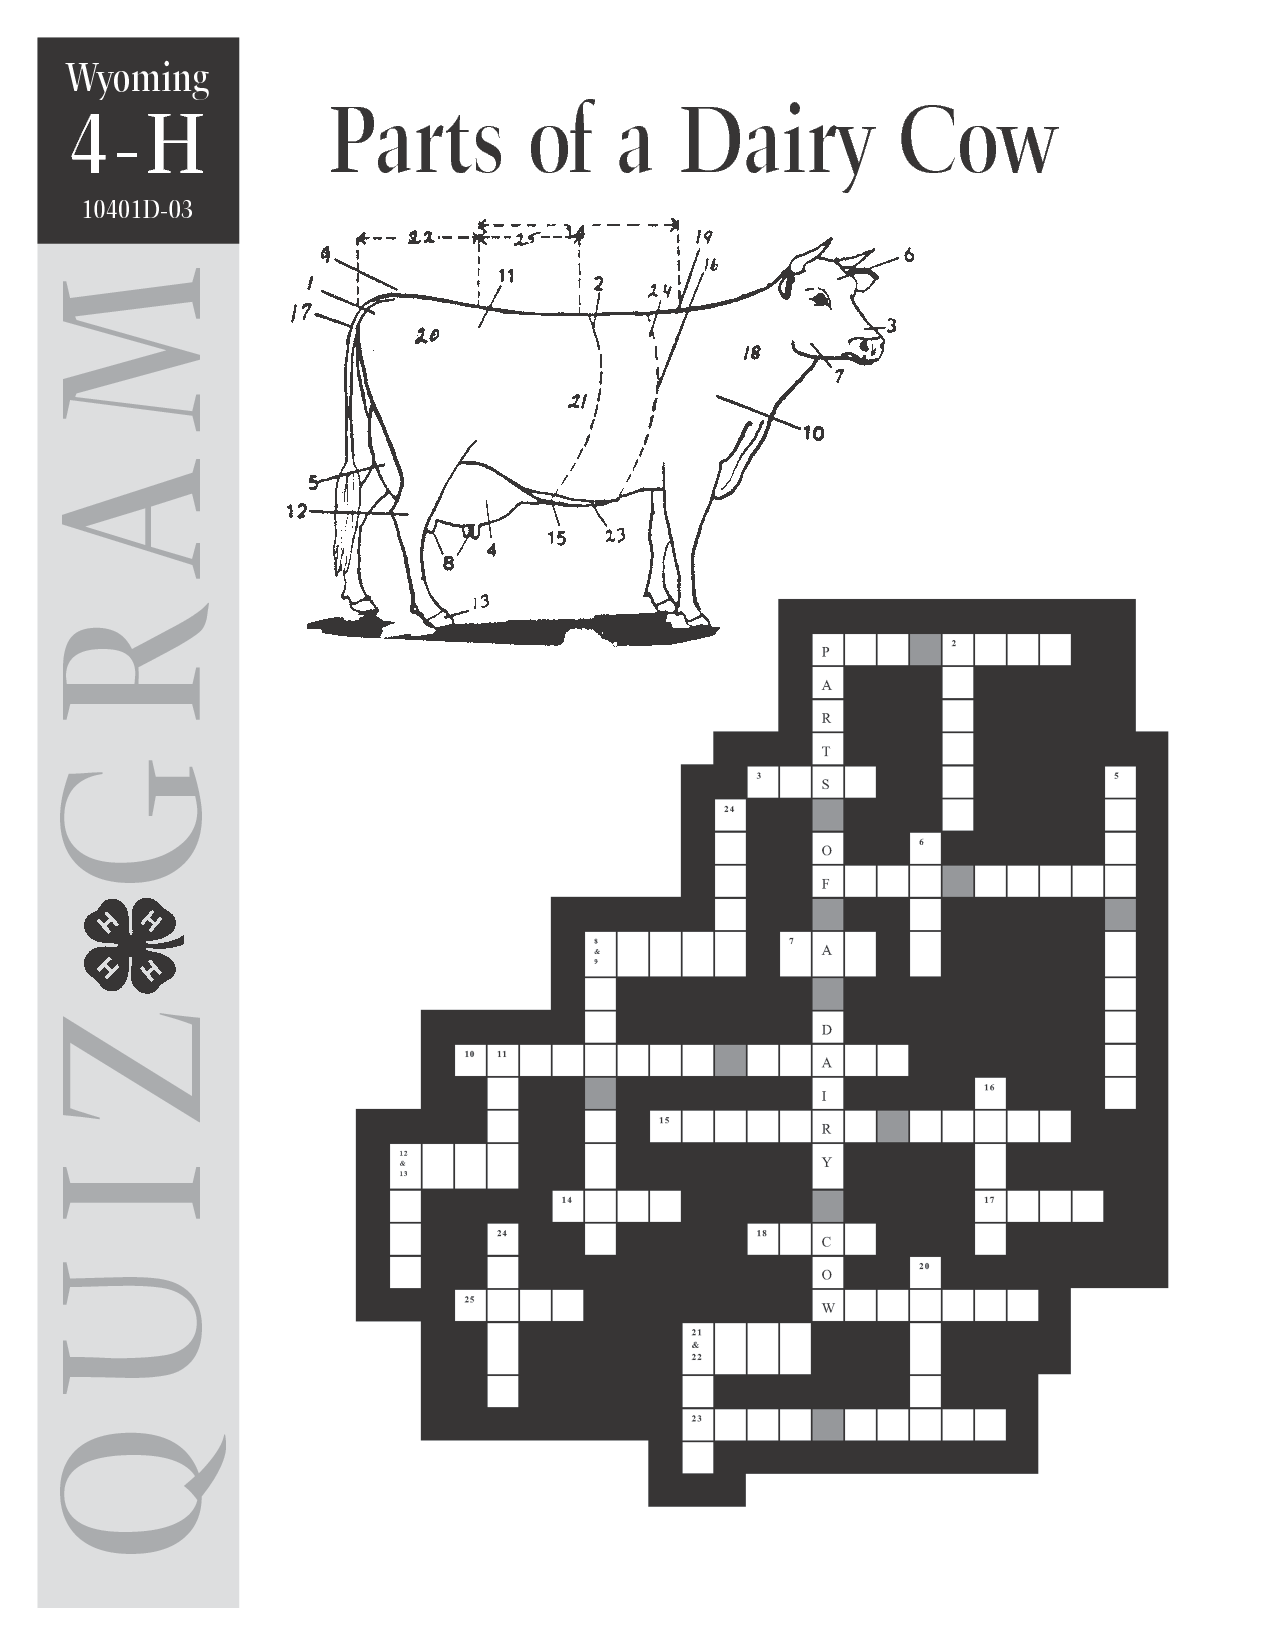 Parts Of A Dairy Cow Crossword Puzzle